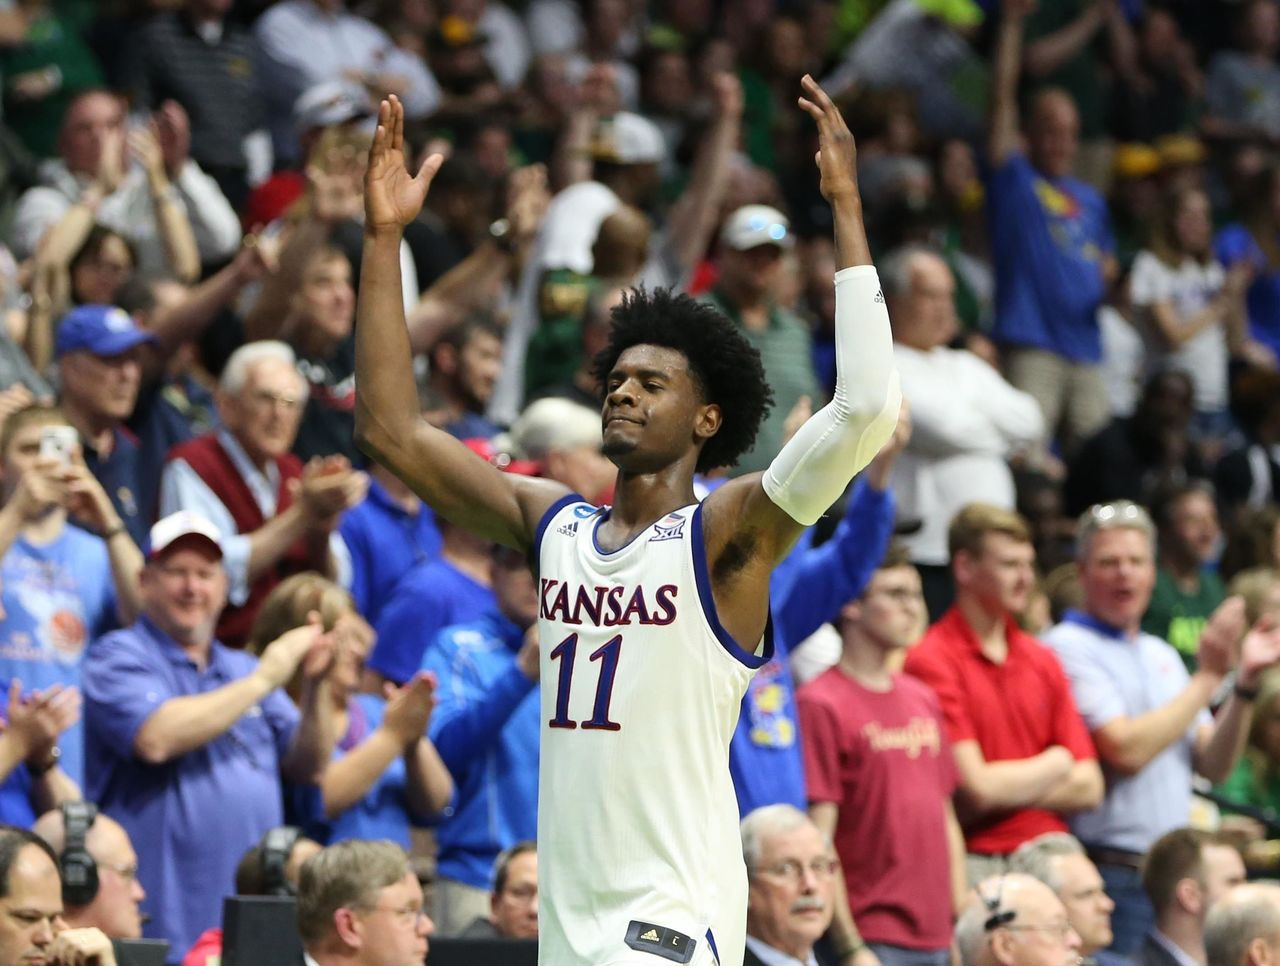 Cropped 2017 03 19t234005z 1048272545 nocid rtrmadp 3 ncaa basketball ncaa tournament second round kansas vs michigan state